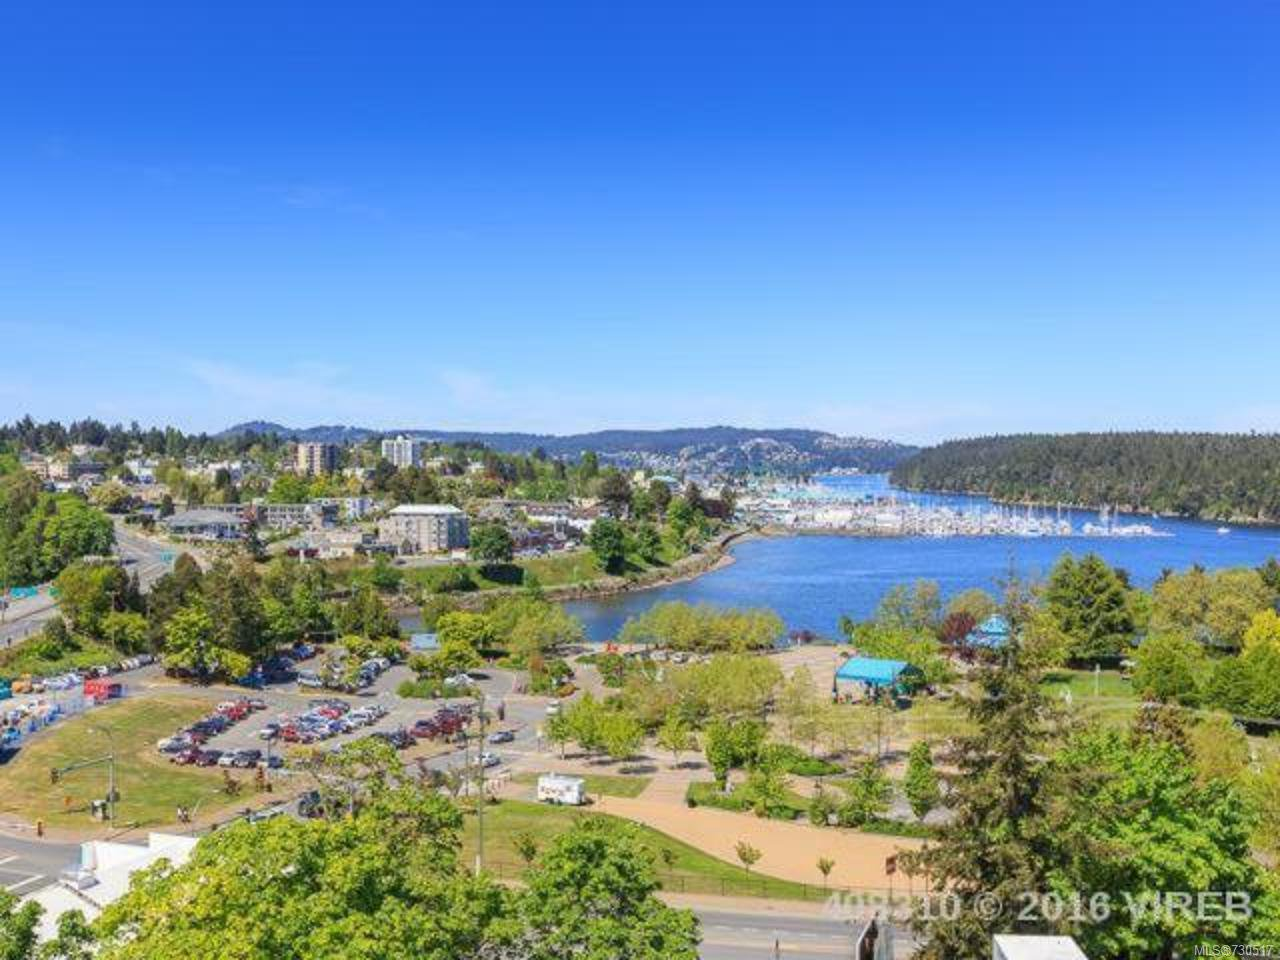 Main Photo: PH2 10 Chapel St in NANAIMO: Na Old City Condo for sale (Nanaimo)  : MLS®# 730517